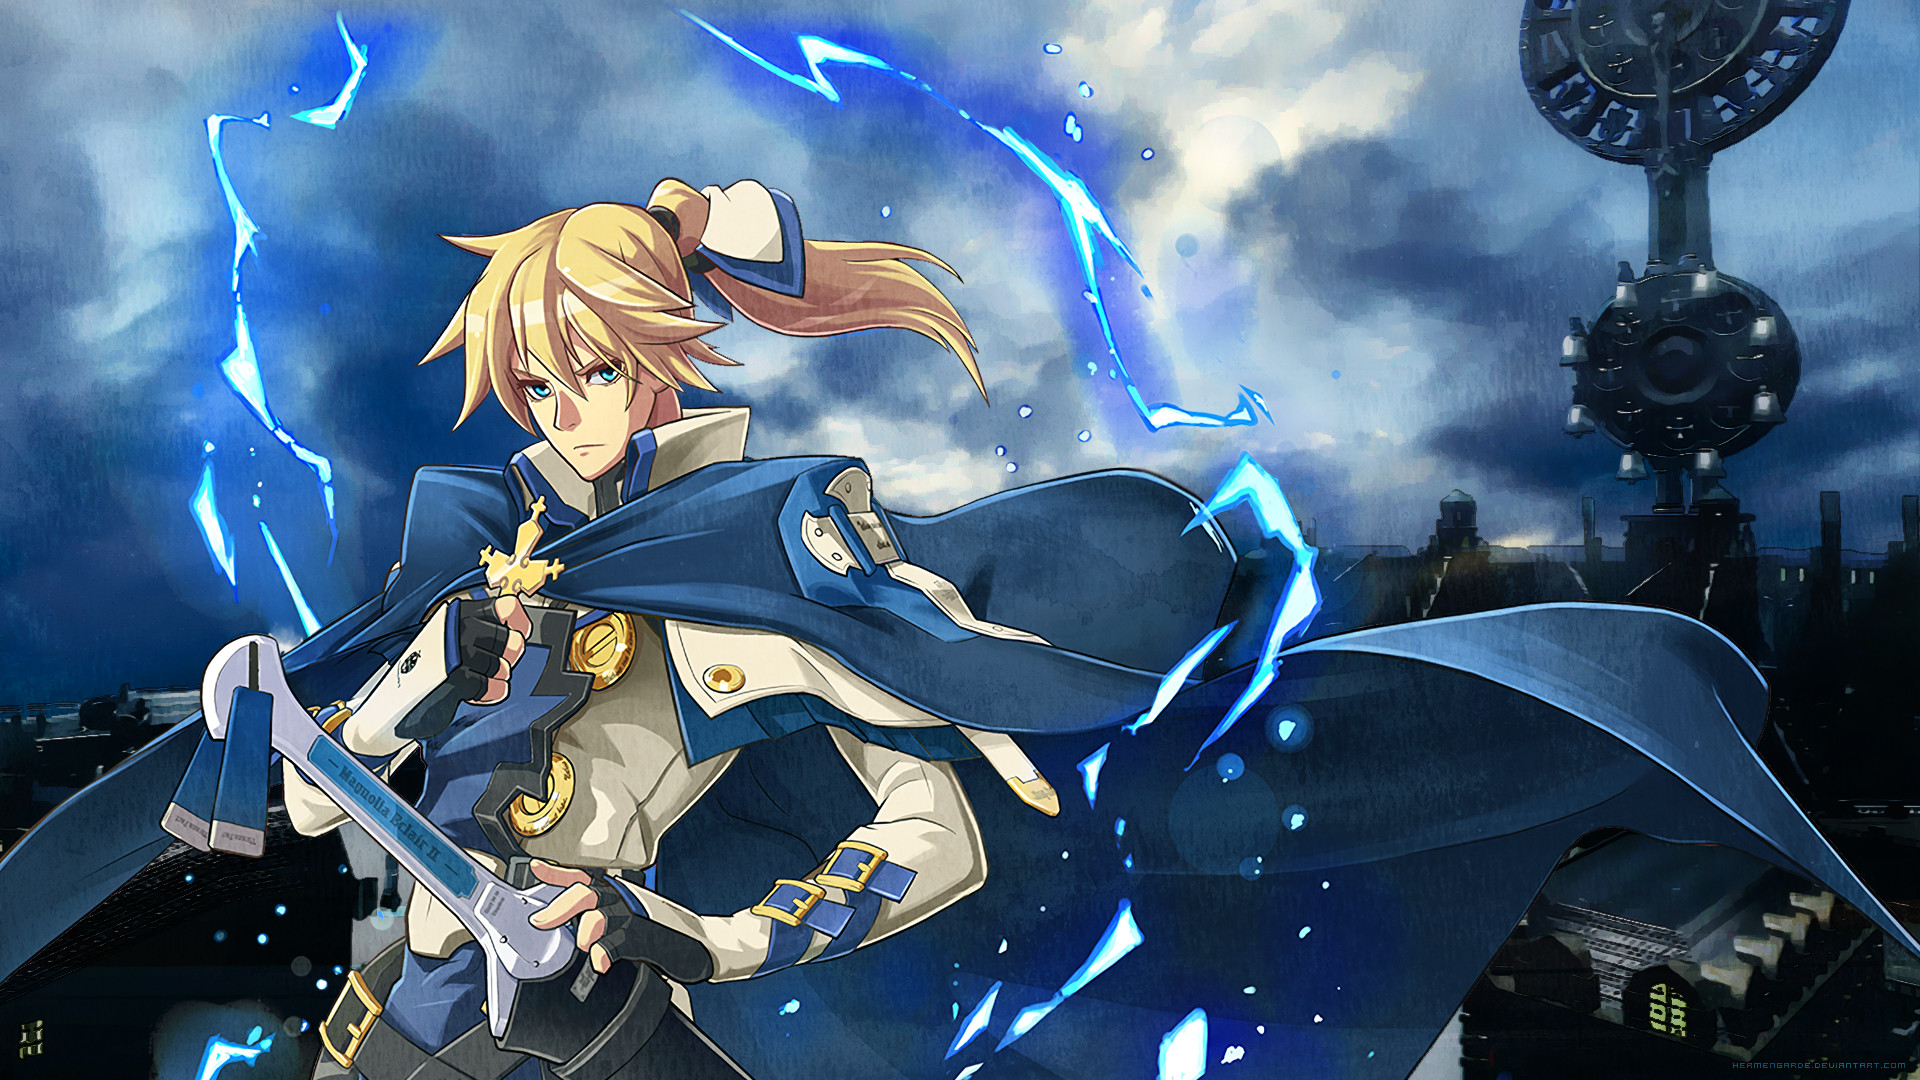 Res: 1920x1080, ... Ky Kiske - Illyria Wallpaper (Guilty Gear) by hermengarde